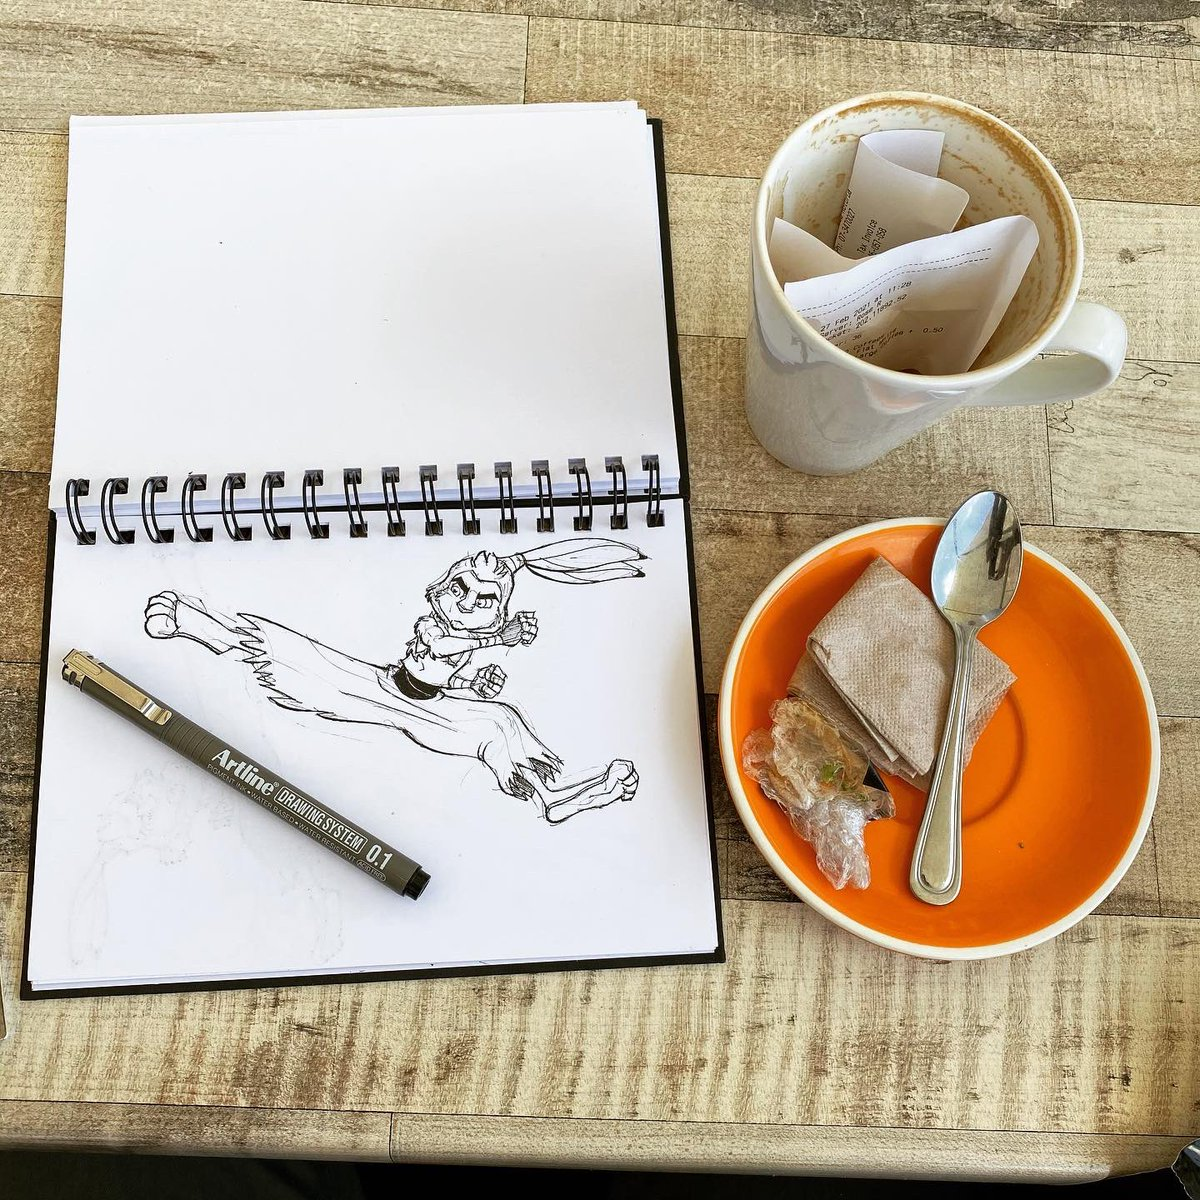 Mid morning coffee with a kick! #traditionalanimation #animation #drawing #art #sketchbook